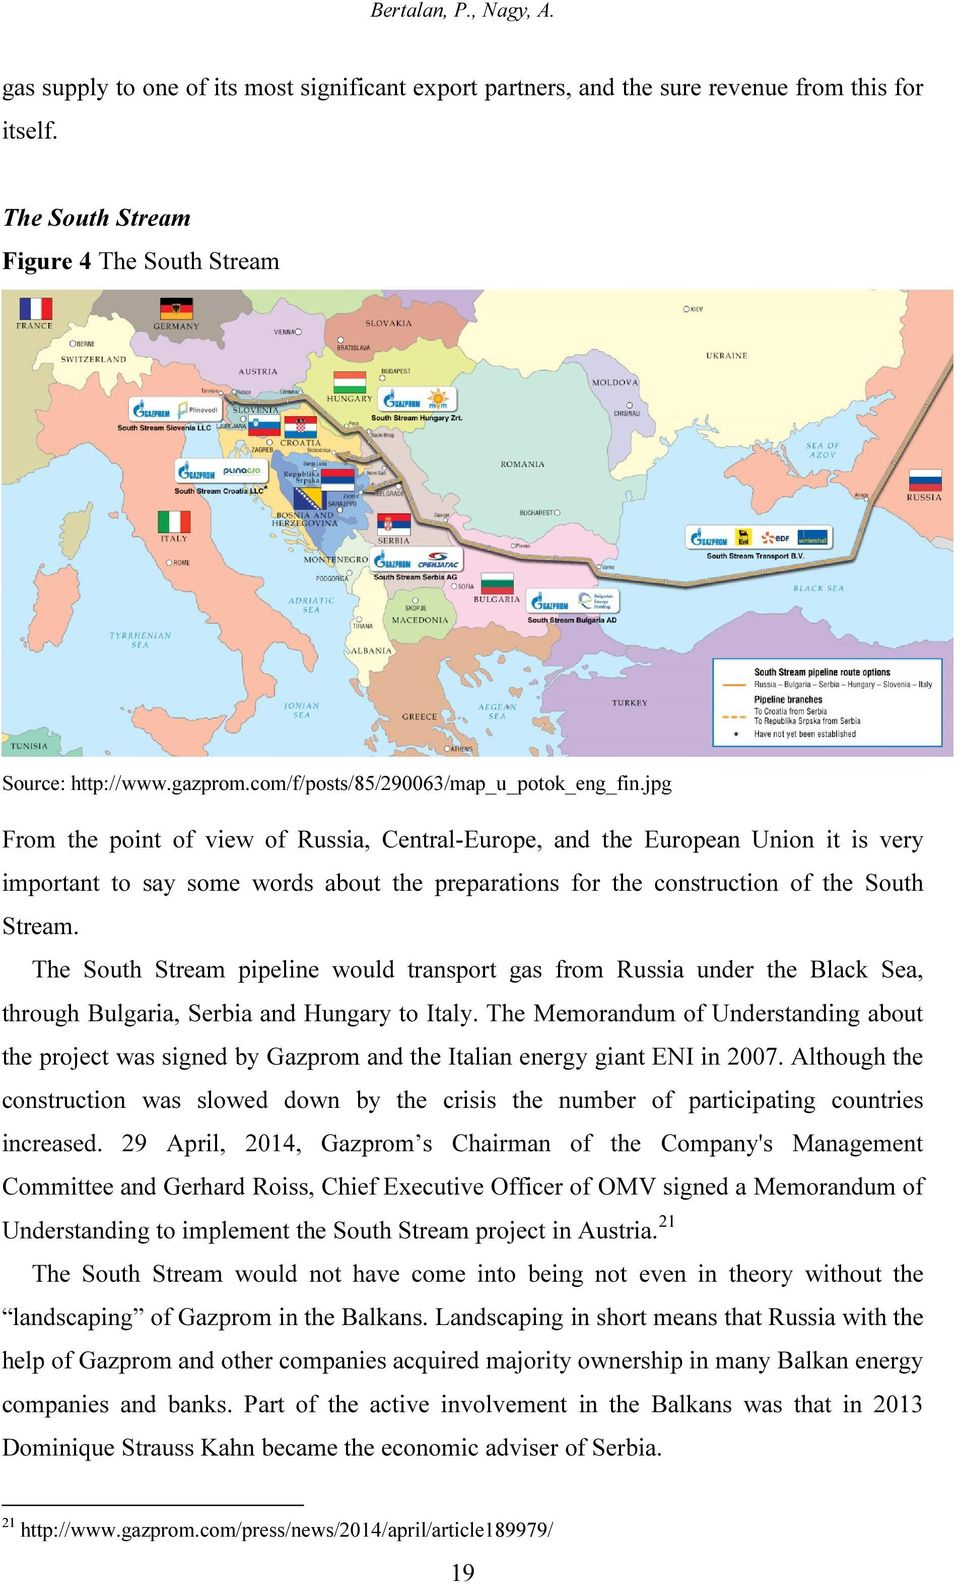 jpg From the point of view of Russia, Central-Europe, and the European Union it is very important to say some words about the preparations for the construction of the South Stream.